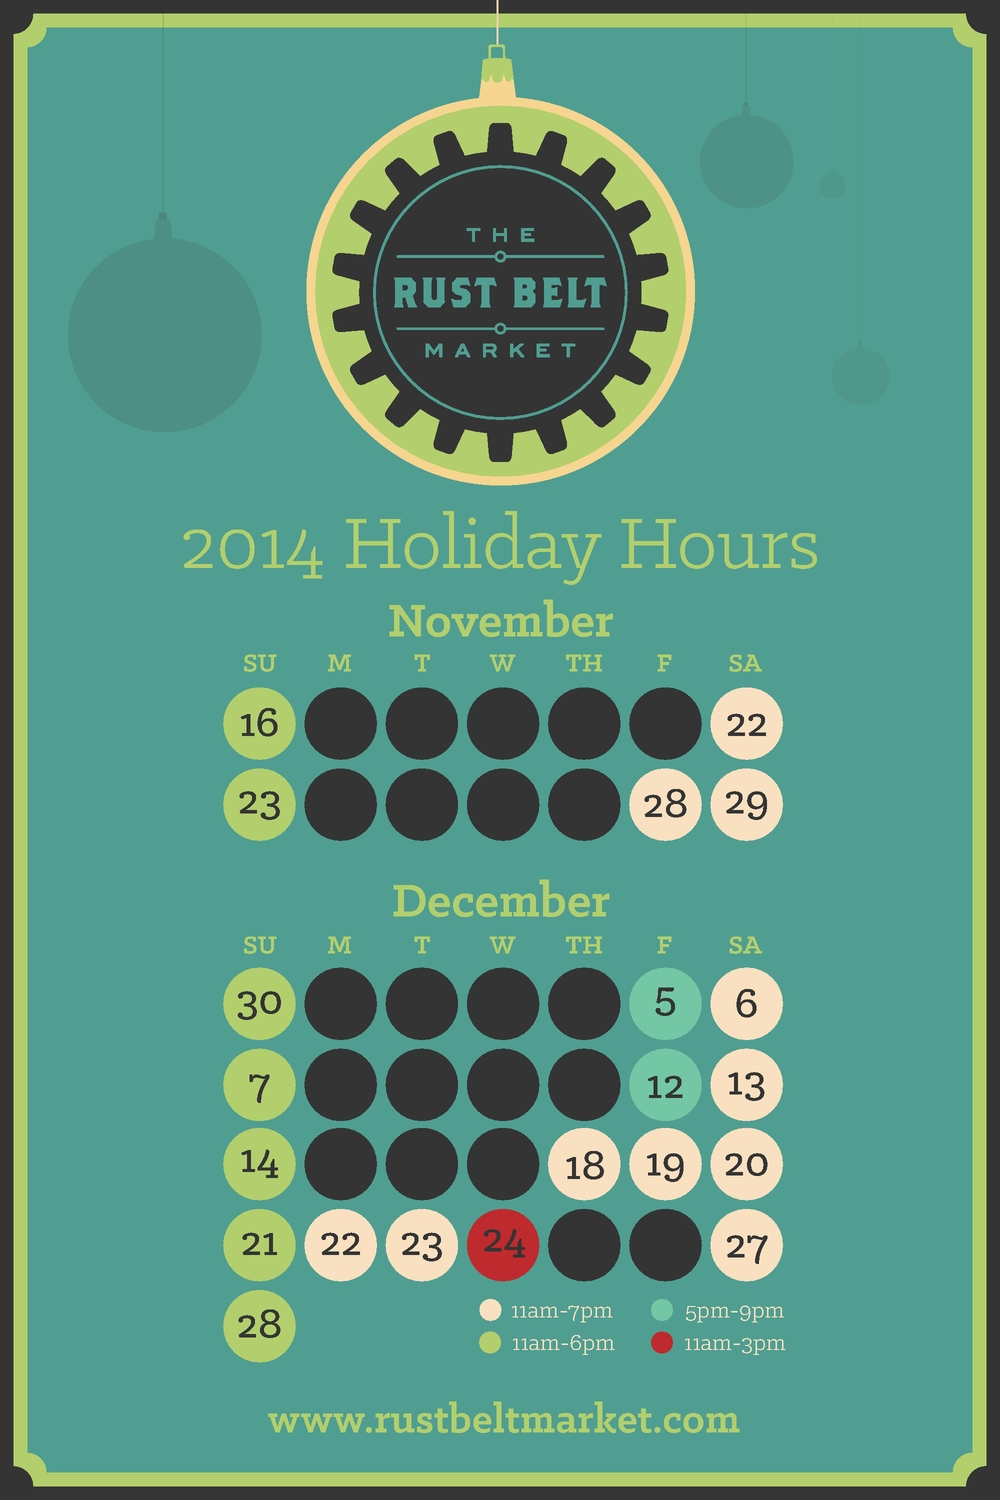 Our 2014 Extended Holiday Hours